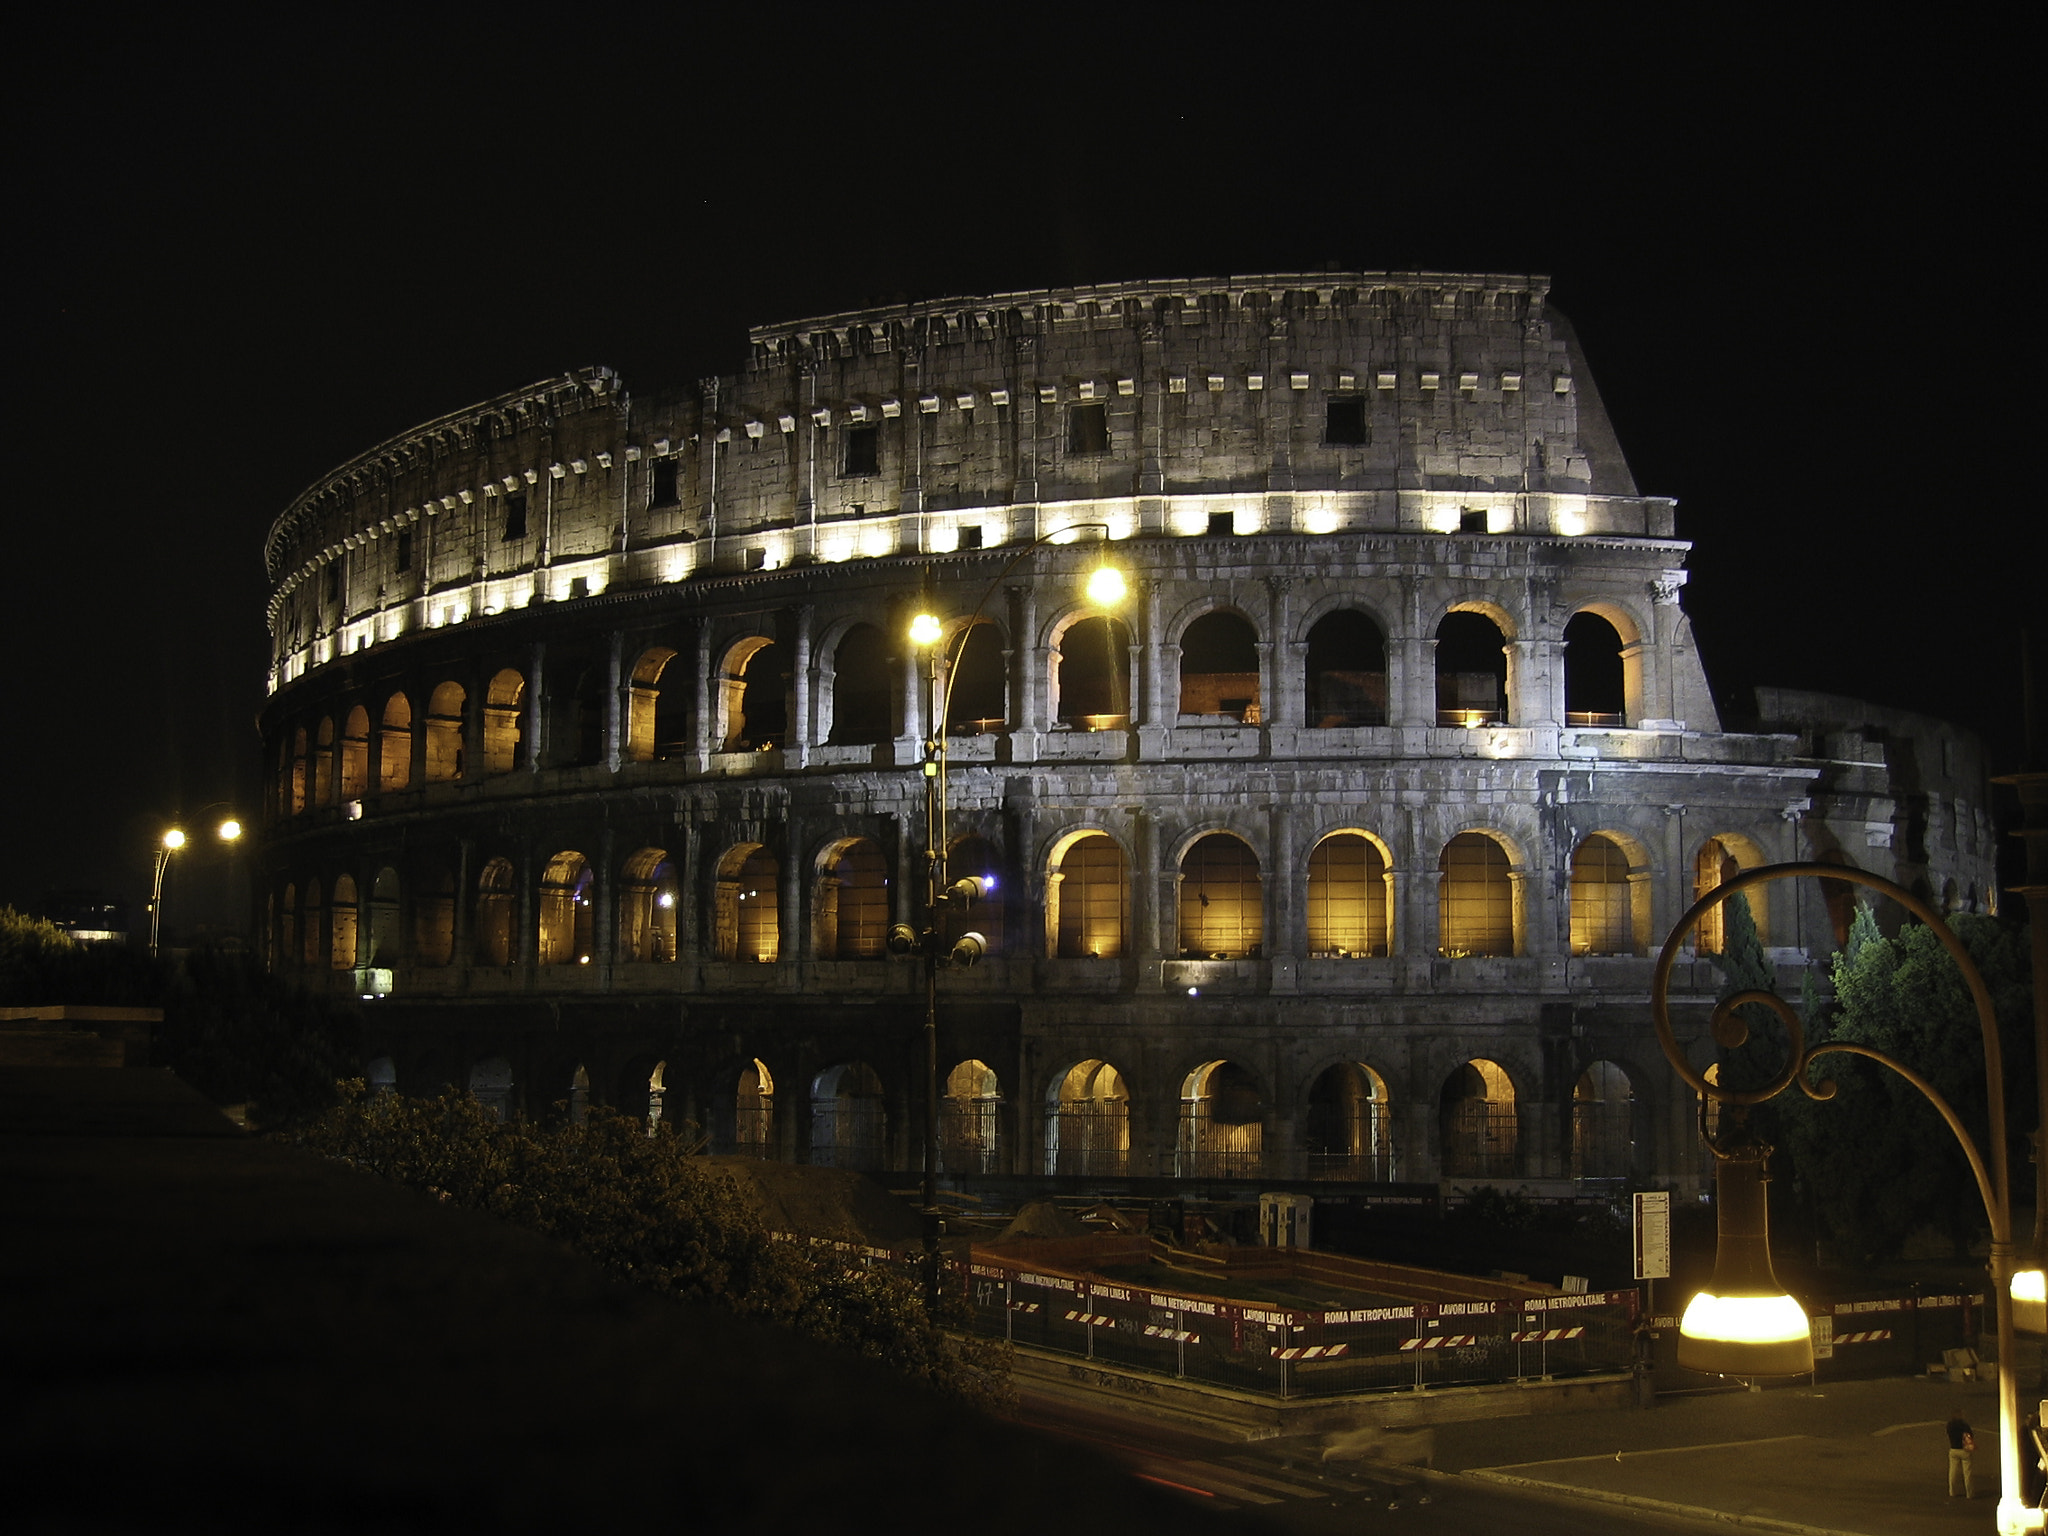 Photograph Colosseum at night by Hans K. on 500px